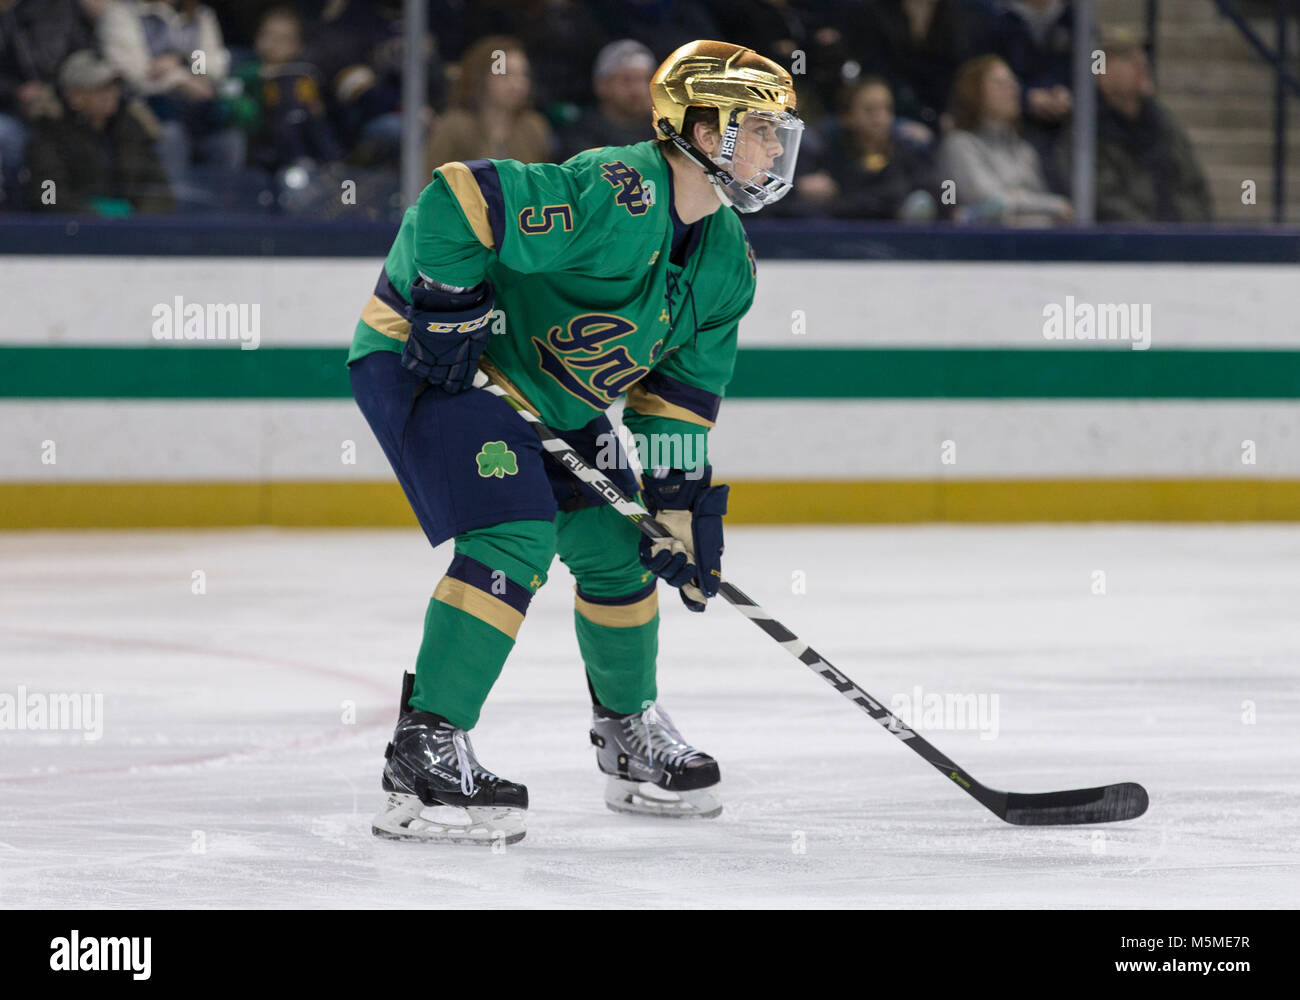 Image result for notre dame hockey green 2018